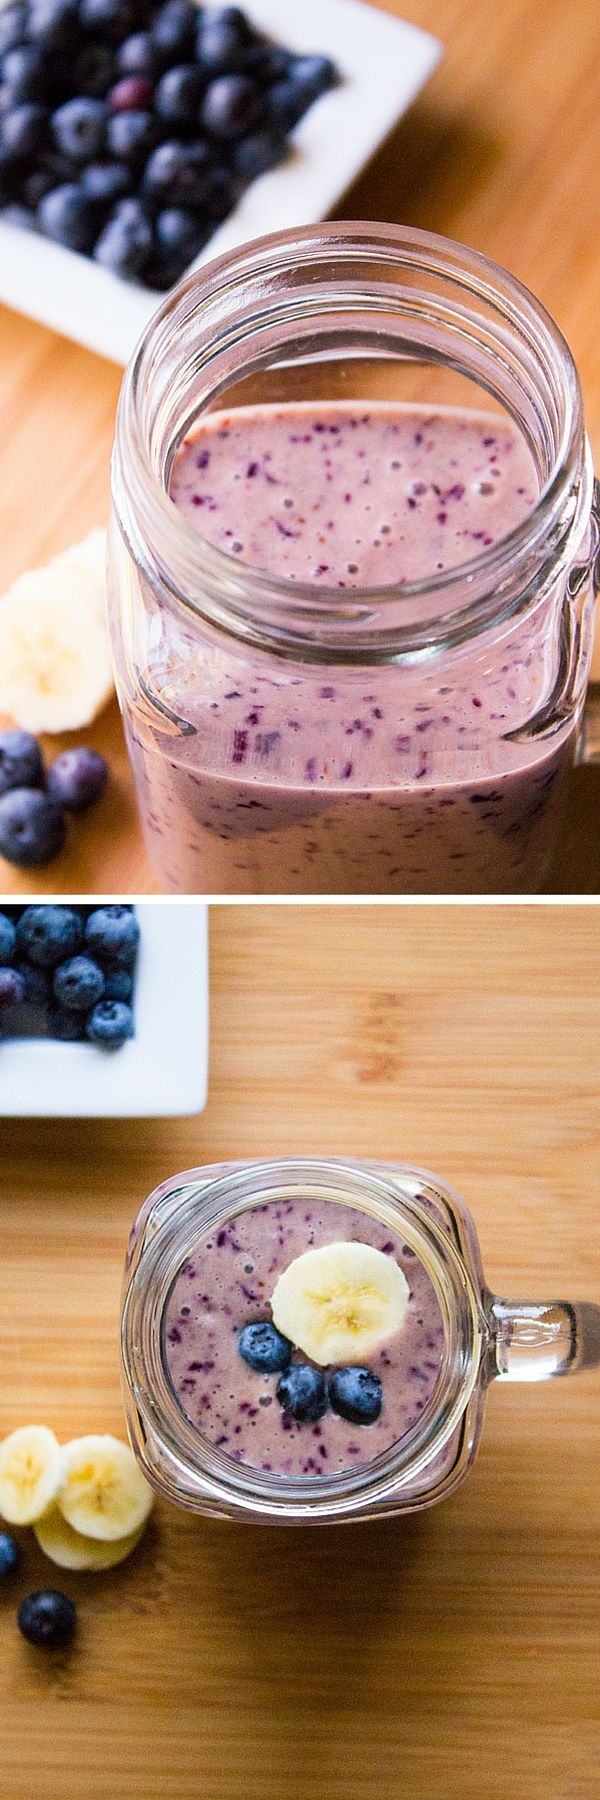 Blueberry Banana Smoothie. Thick & creamy, tastes delicious & totally healthy - have this smoothie for an on-the-go breakfast or healthy snack!